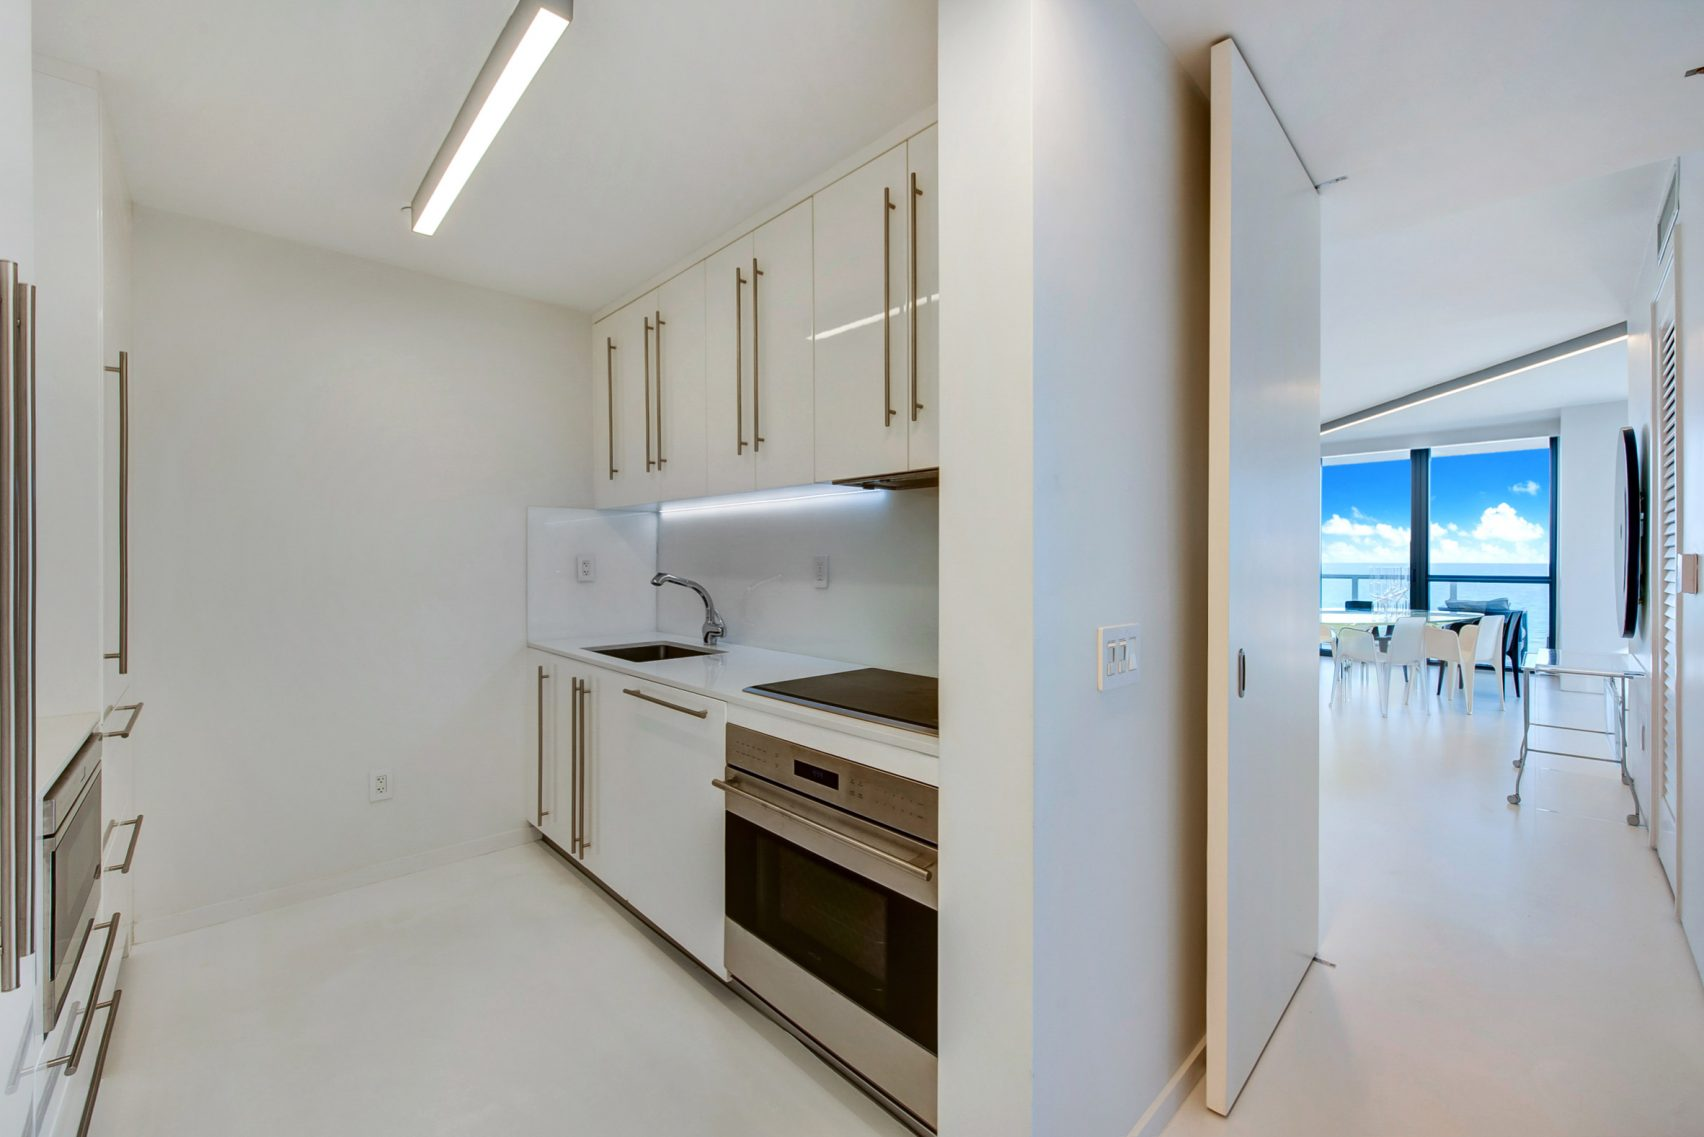 design, luxury, penthouse, american, miami, modern, zaha hadi, beach, architect, villa, billionaire, house, usa, kitchen